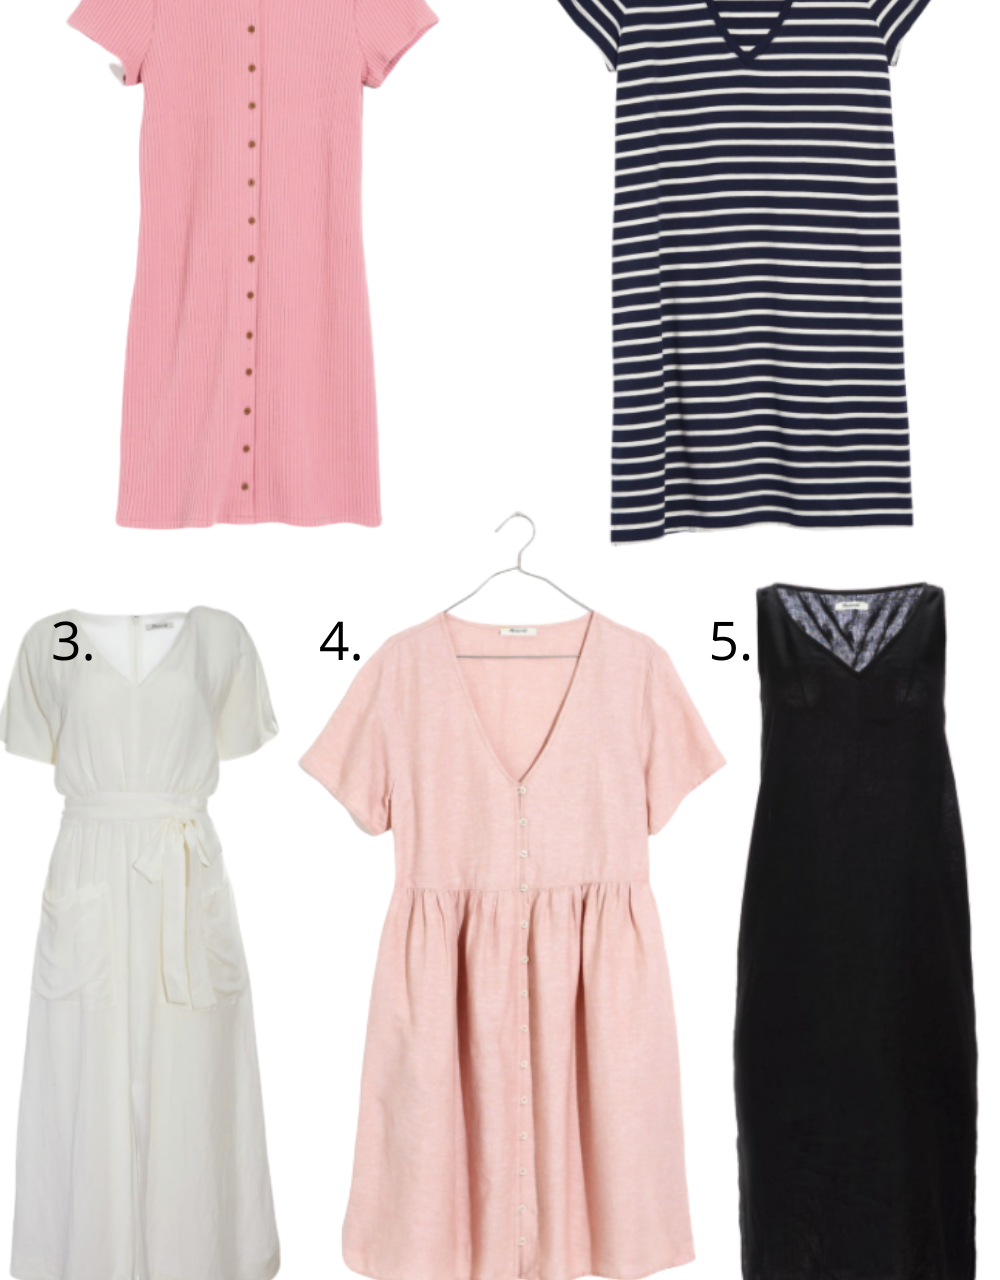 5 Must Have Summer Dresses from Madewell